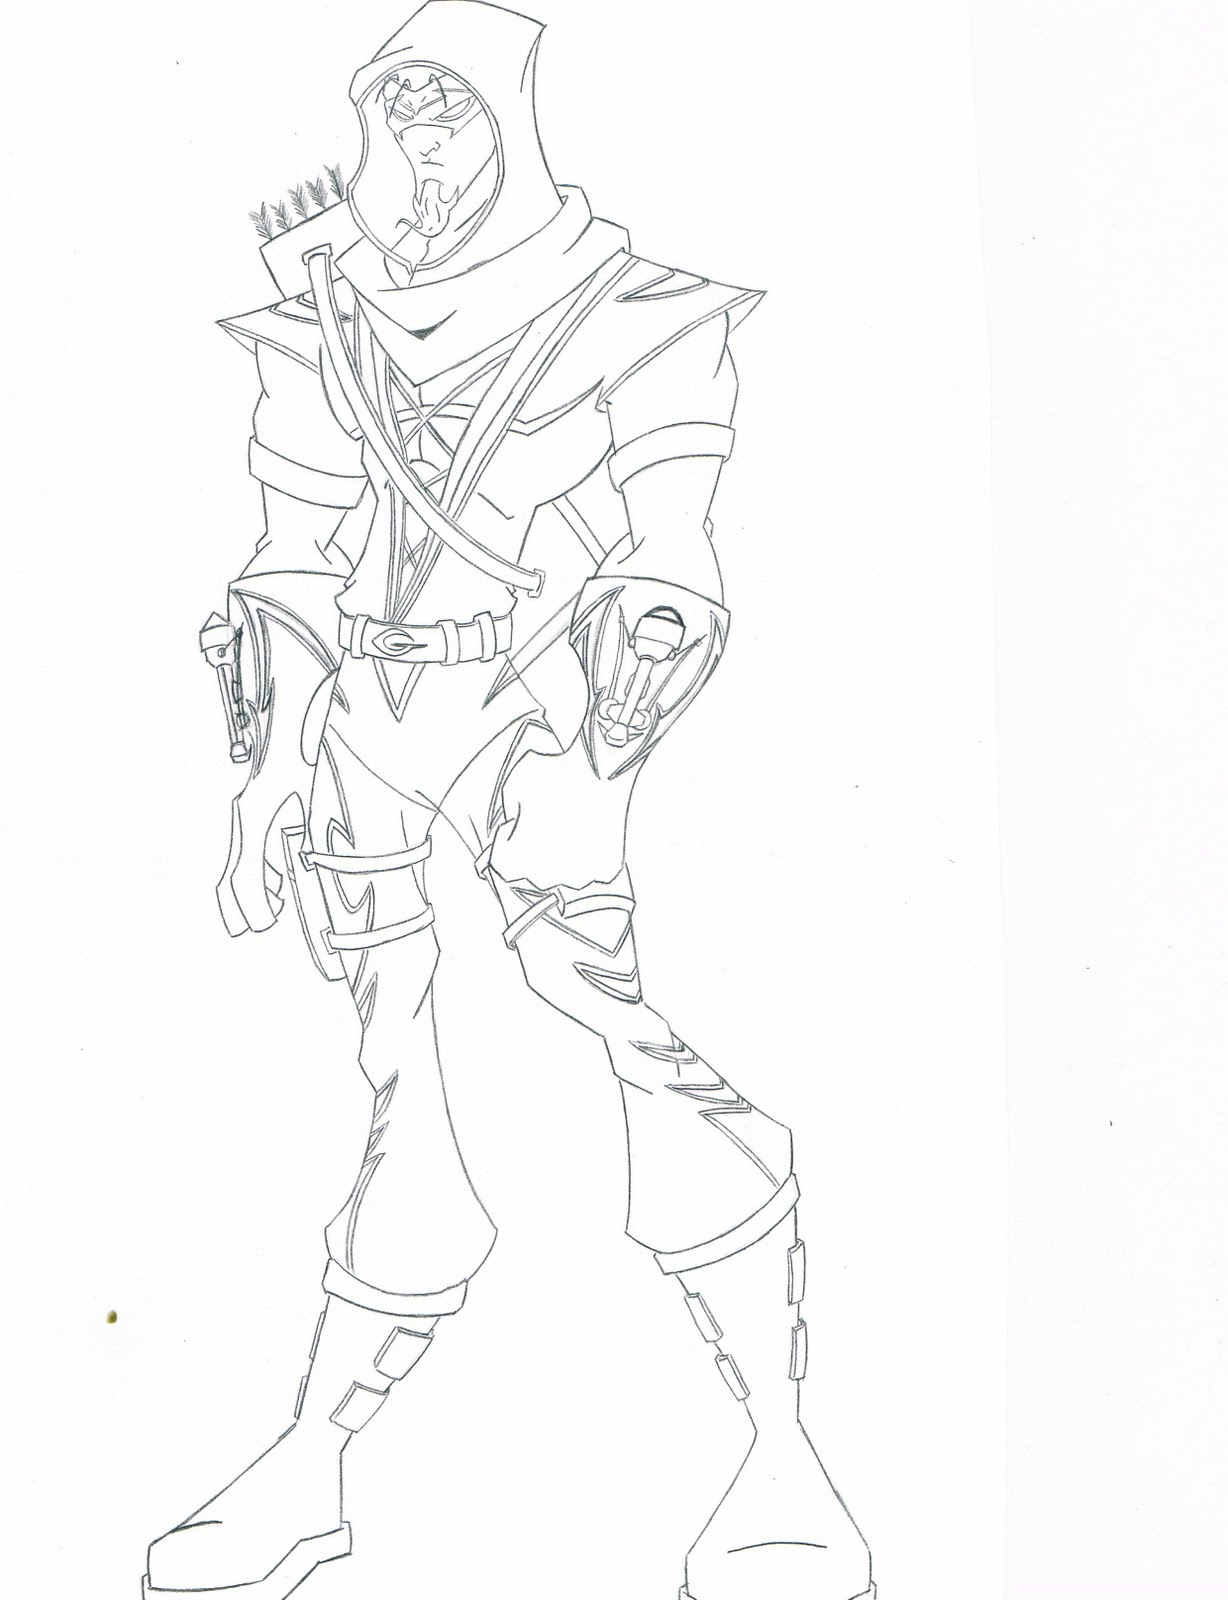 Green Arrow Drawing at GetDrawings.com | Free for personal use Green ...